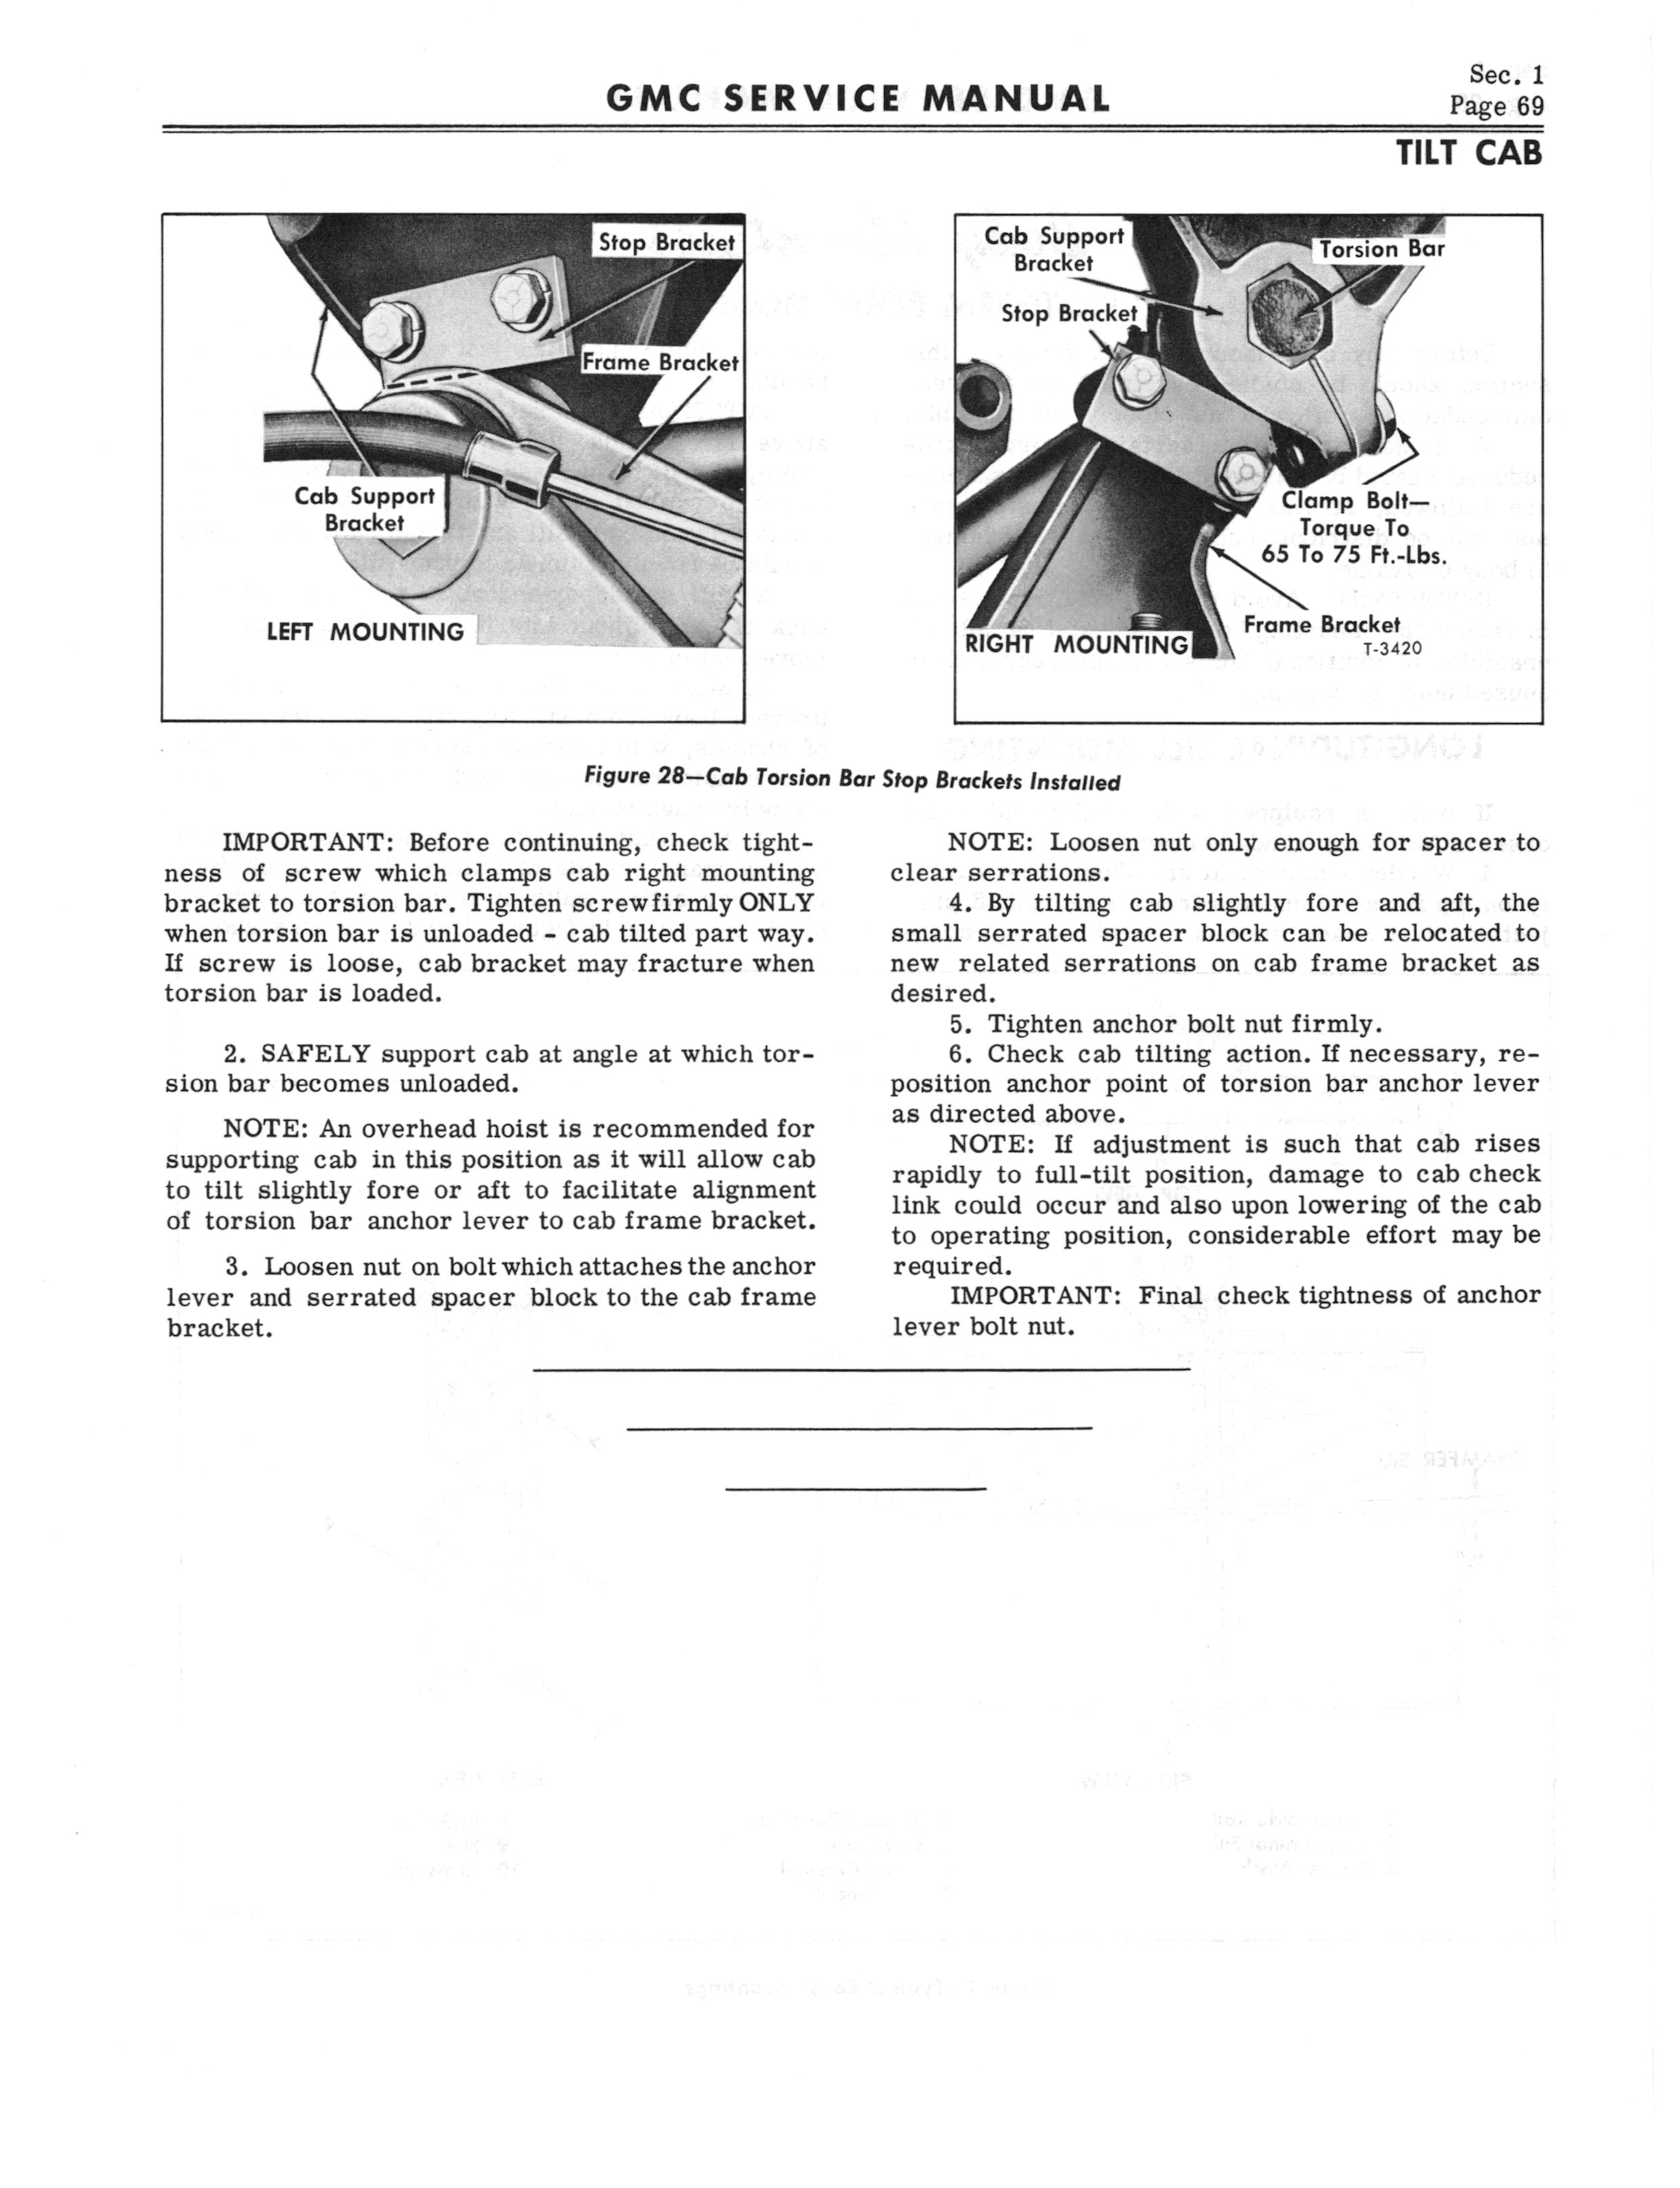 1966 GMC Service Manual Series 4000-6500 page 75 of 506